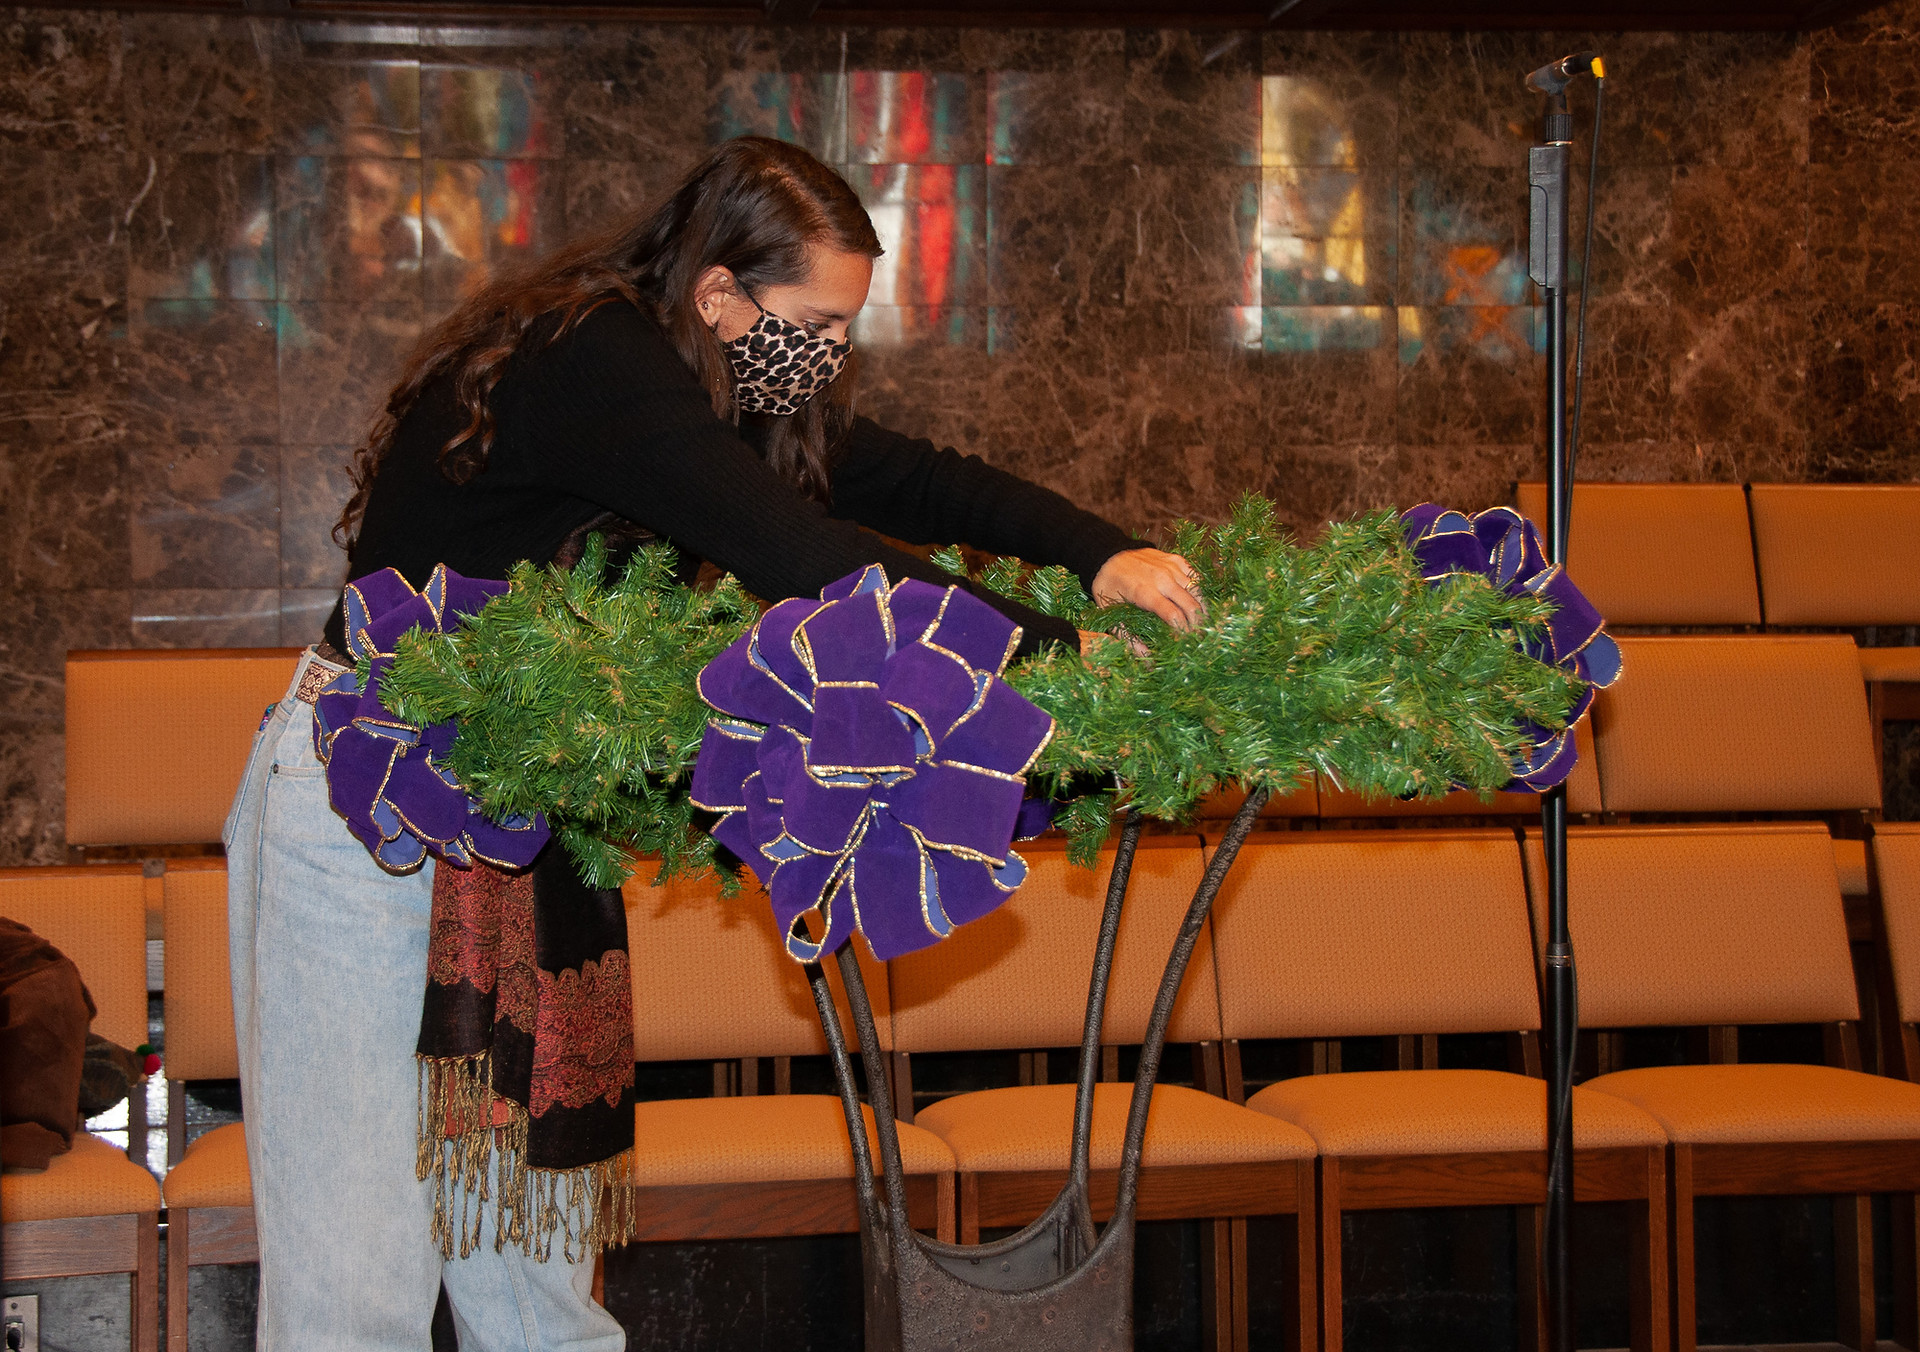 Fluffing the Advent Wreath!